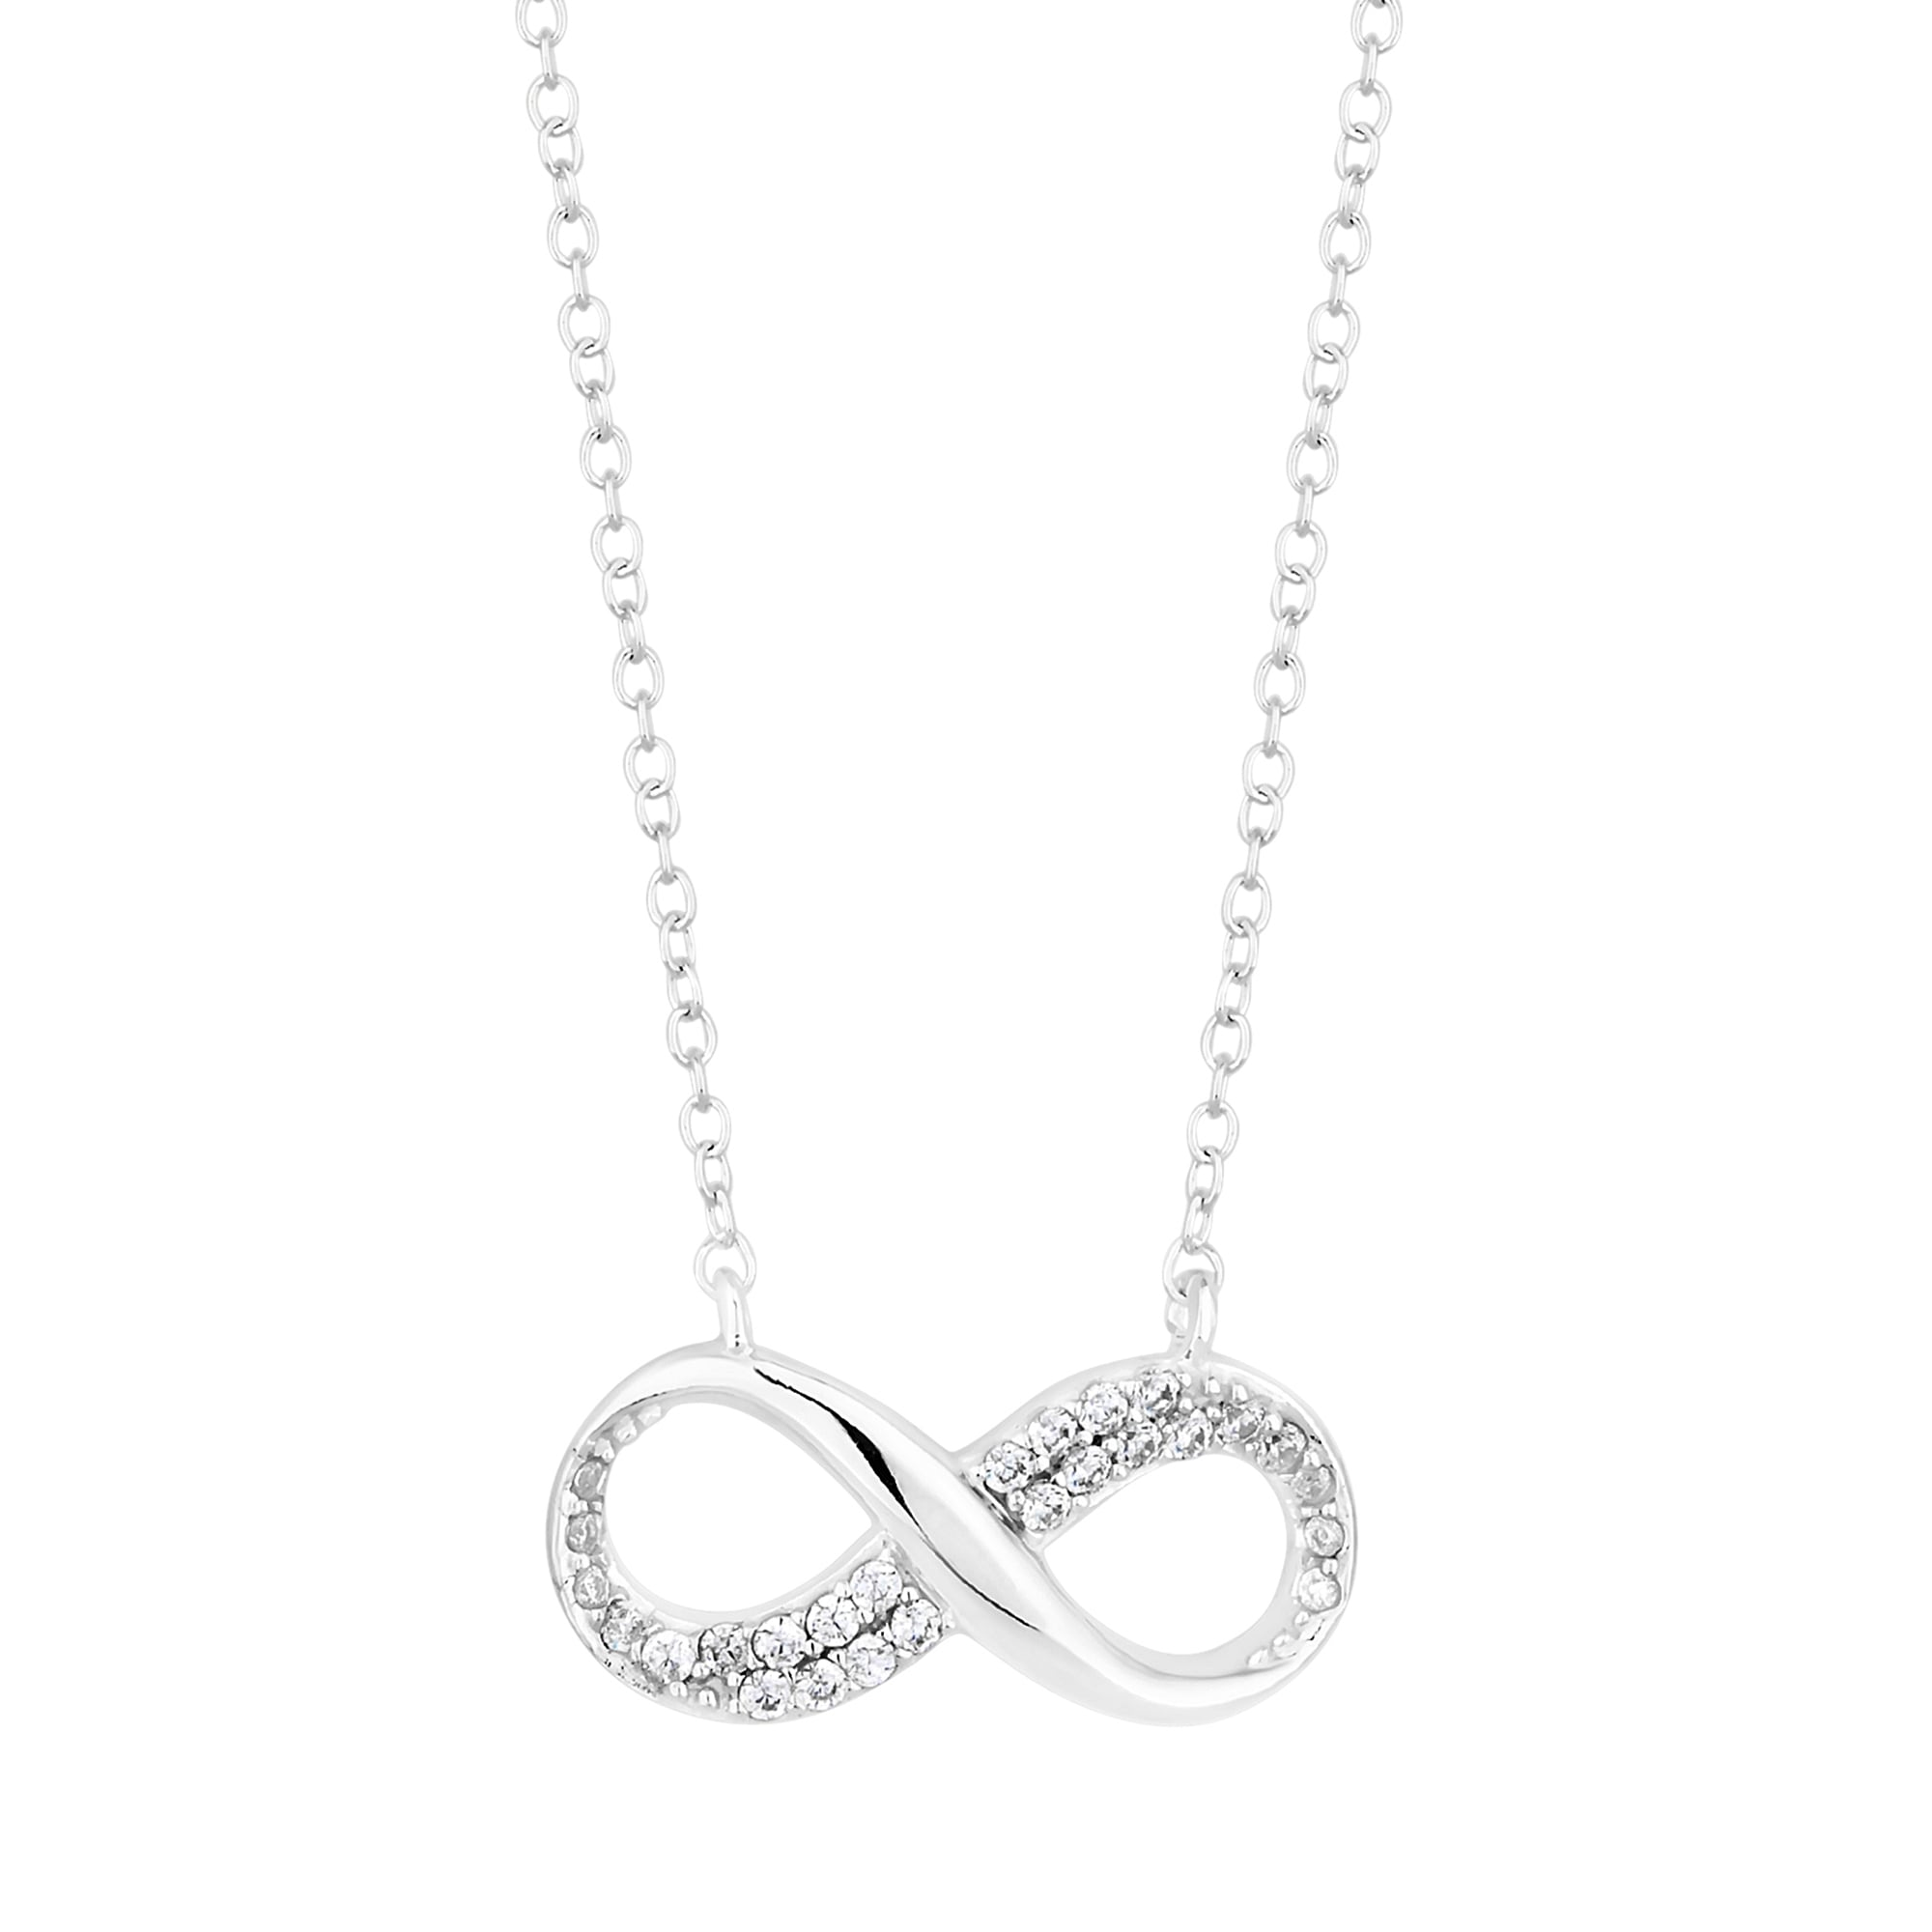 g overstock shipping plated yellow in necklace today watches jewelry silver tdw h free product miadora open white interlaced infinity two and tone heart sterling diamond